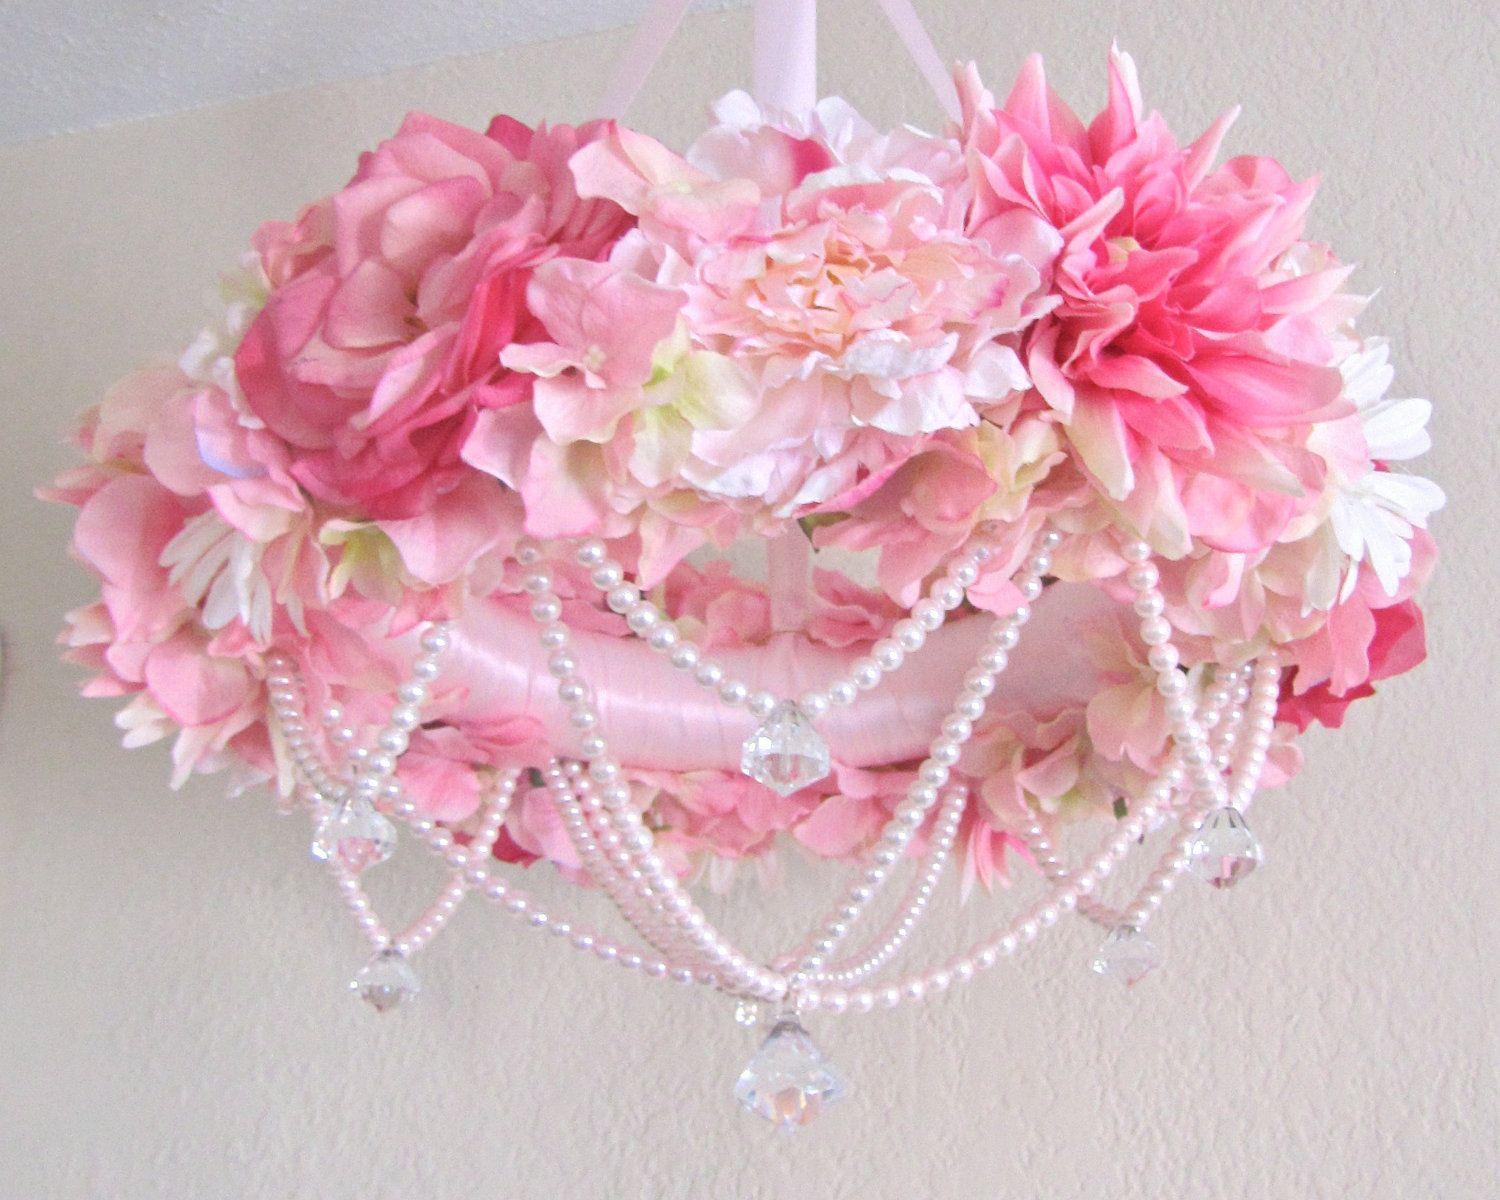 baby mobile flower crib mobile floral chandelier shabby chic pink baby girl nursery decor pearls. Black Bedroom Furniture Sets. Home Design Ideas